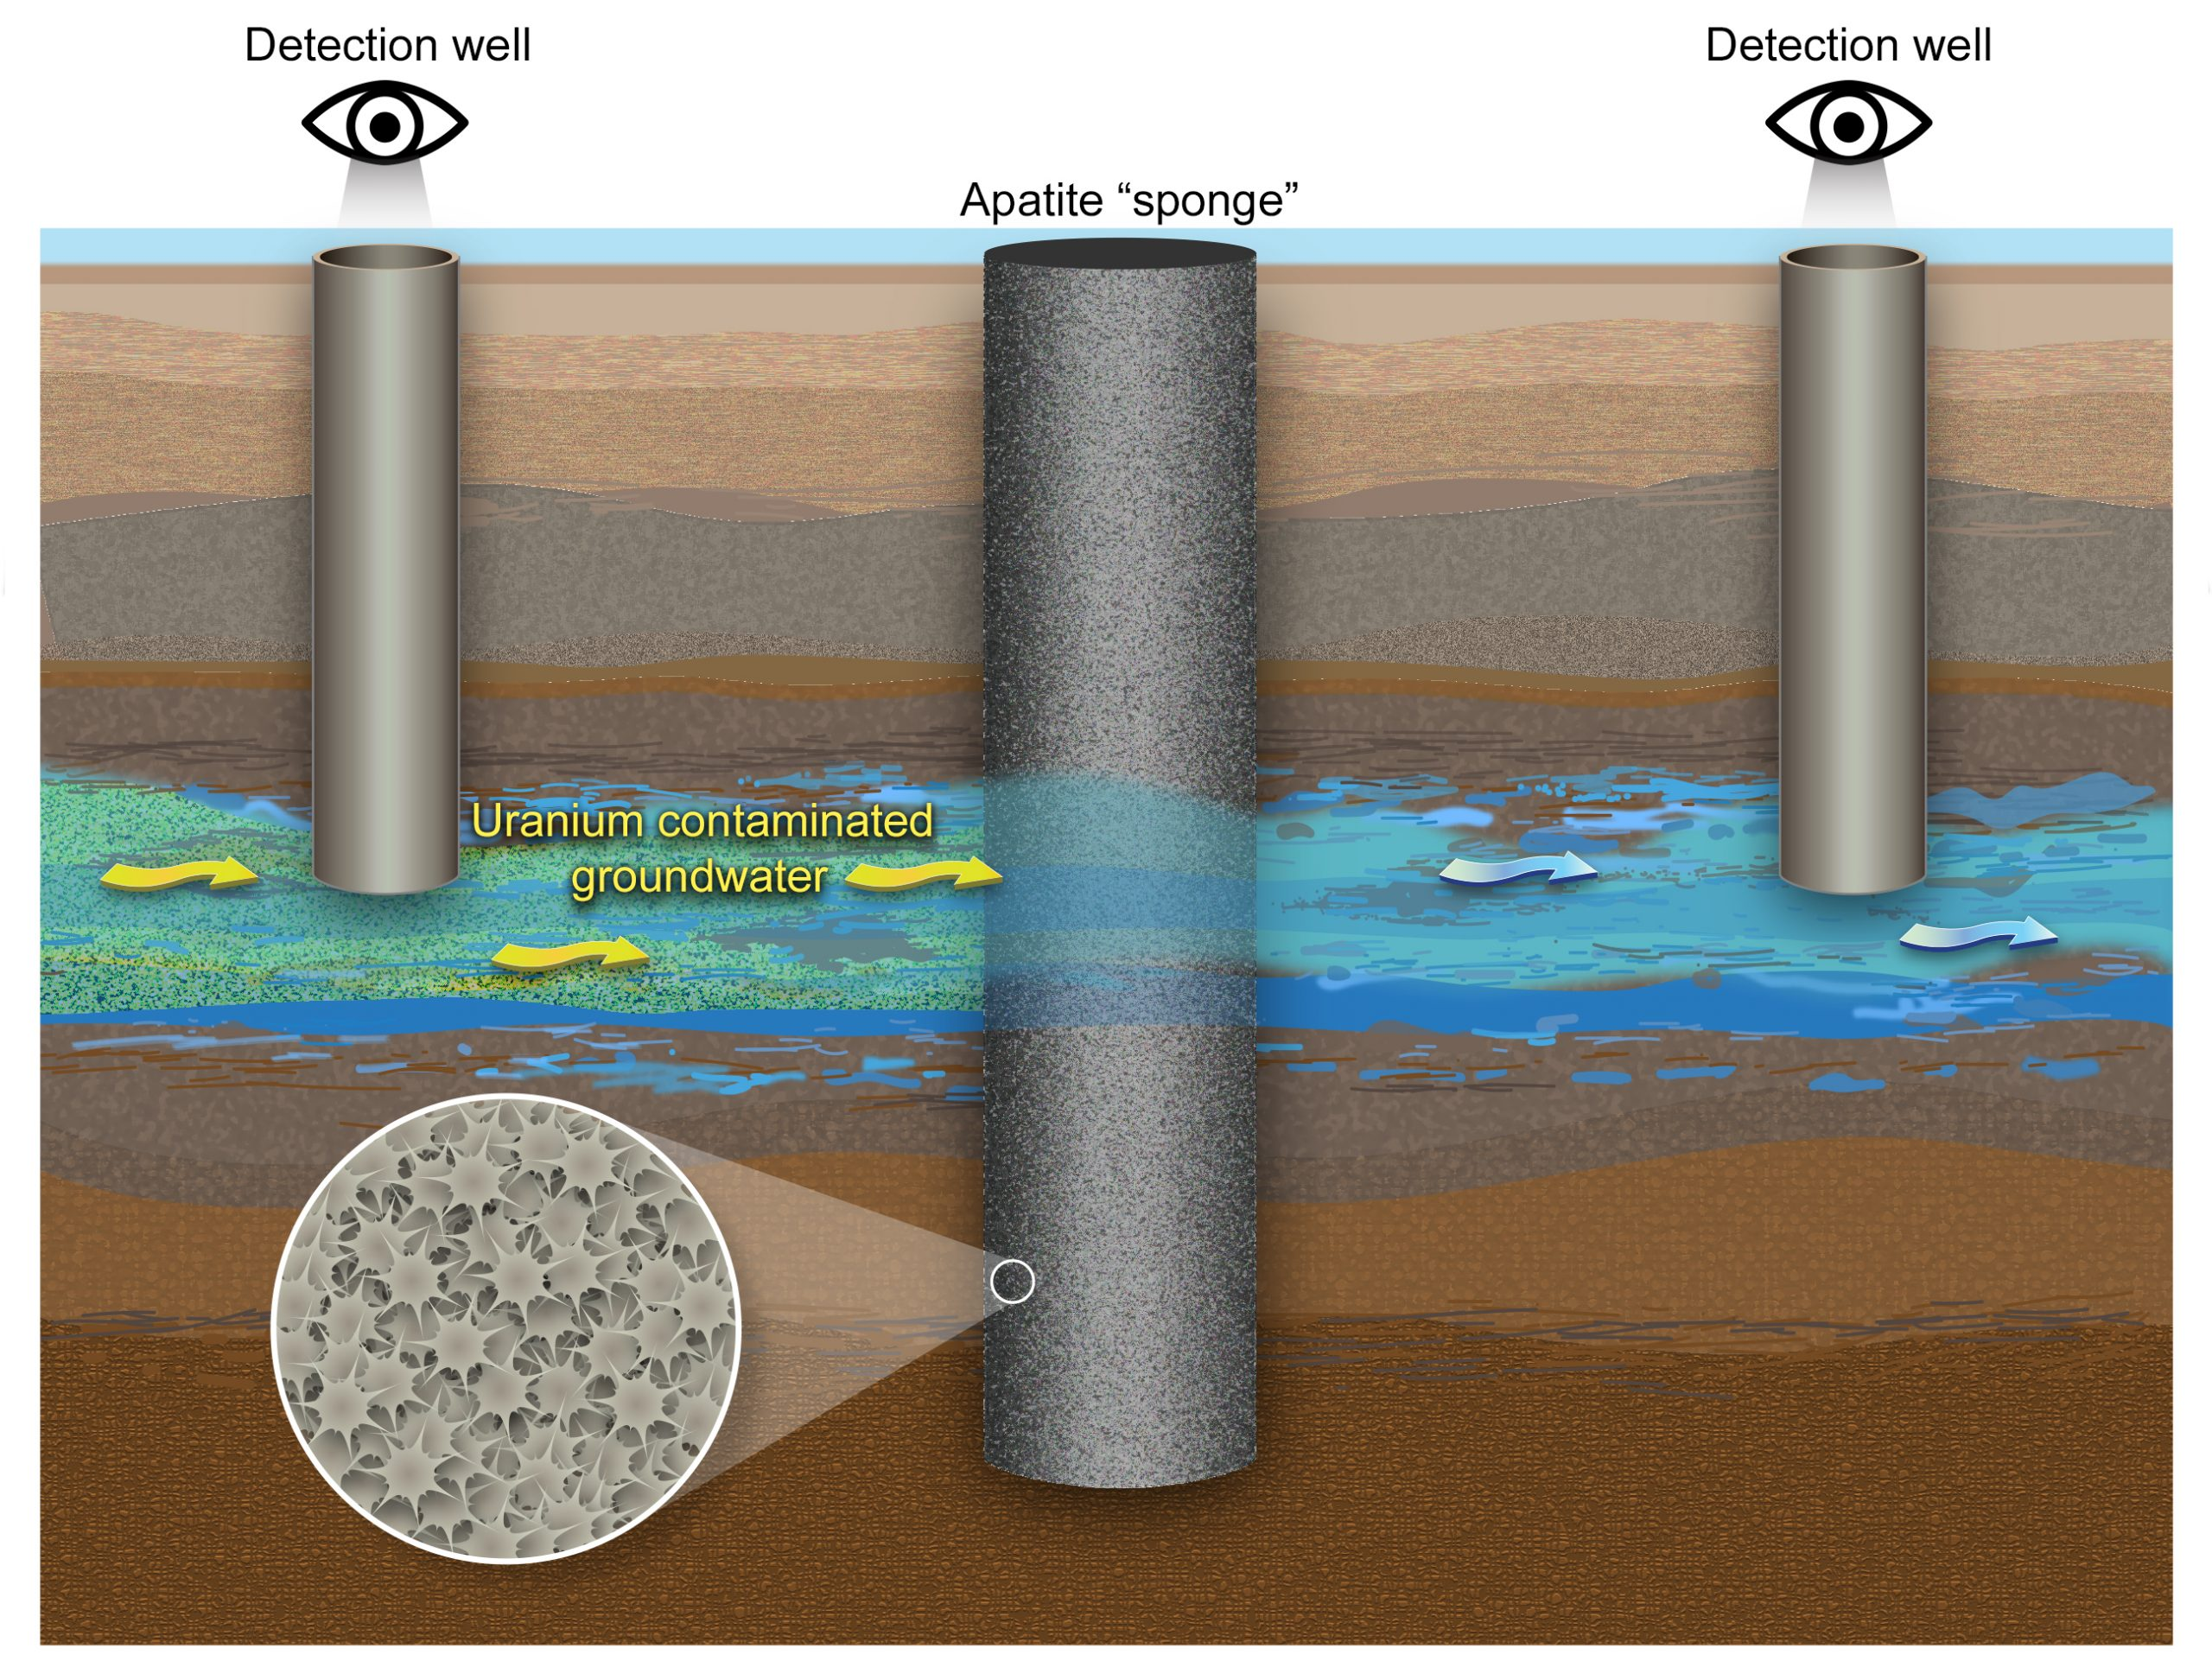 Graphic of underground stream with uranium being absorbed by apatite with detection wells upstream and downstream.